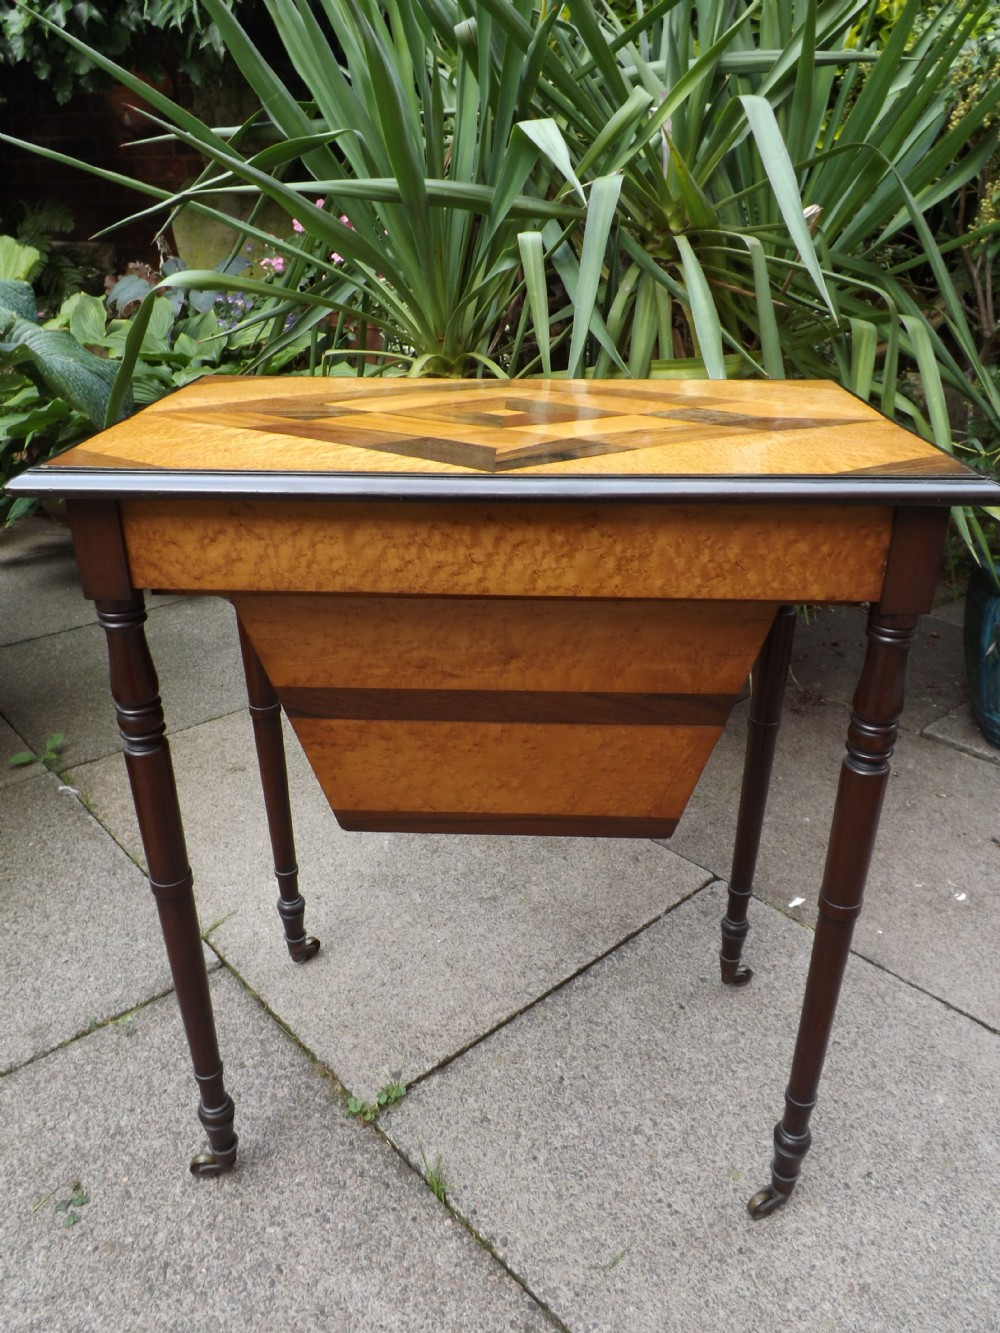 fine early c19th regency period ladies 'worktable' inlaid with specimen wood veneers